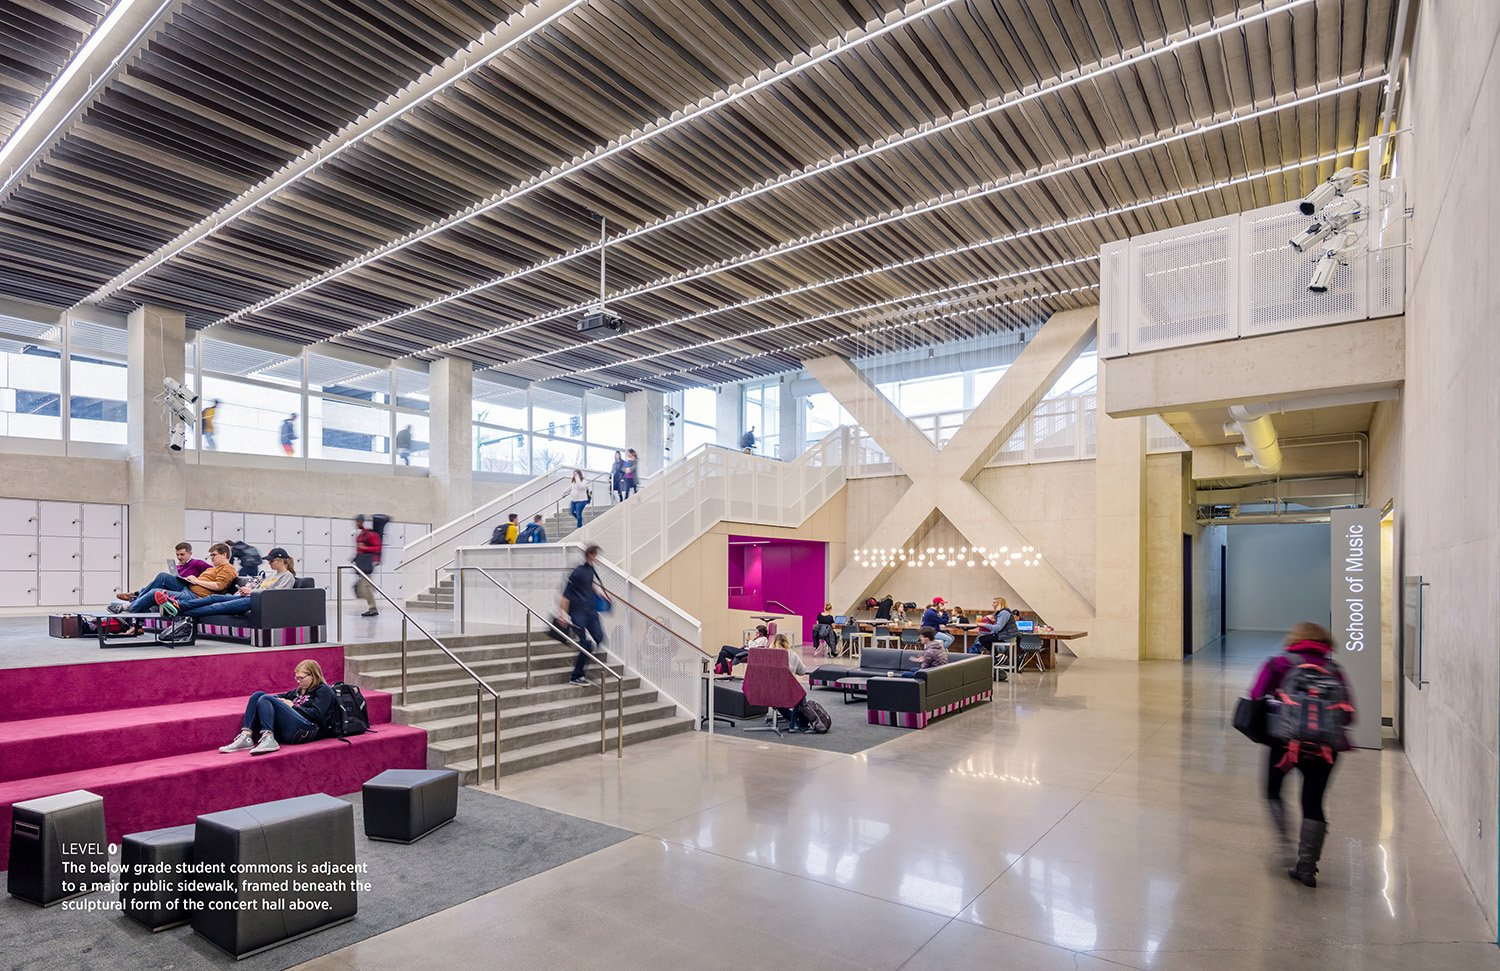 The below grade student commons is adjacent to a major public sidewalk, framed beneath the sculptural form of the concert hall above. Tim Griffith